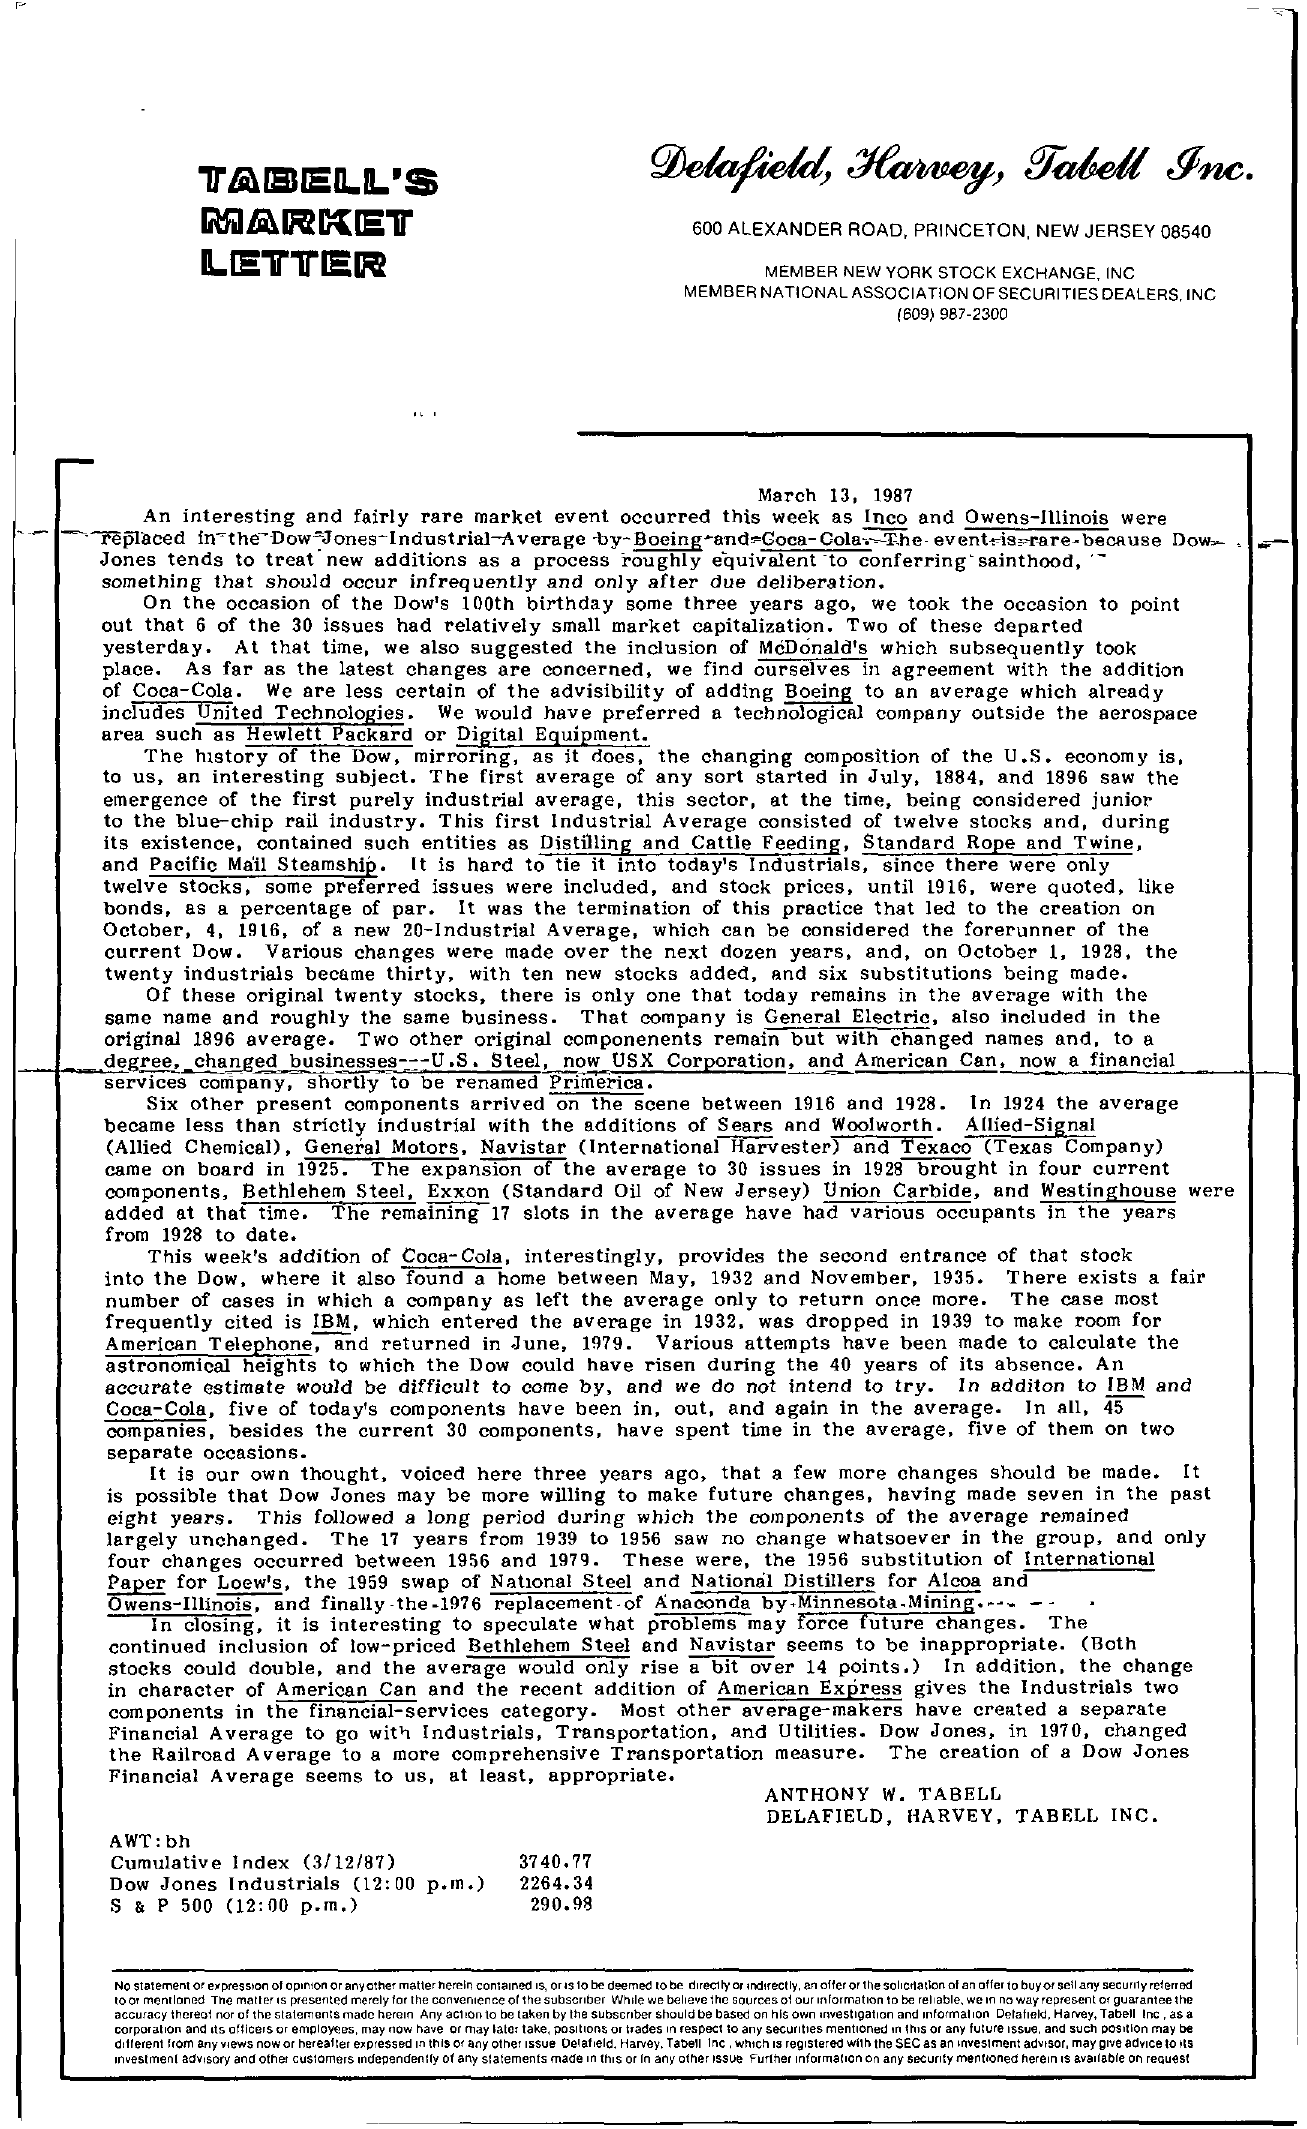 Tabell's Market Letter - March 13, 1987